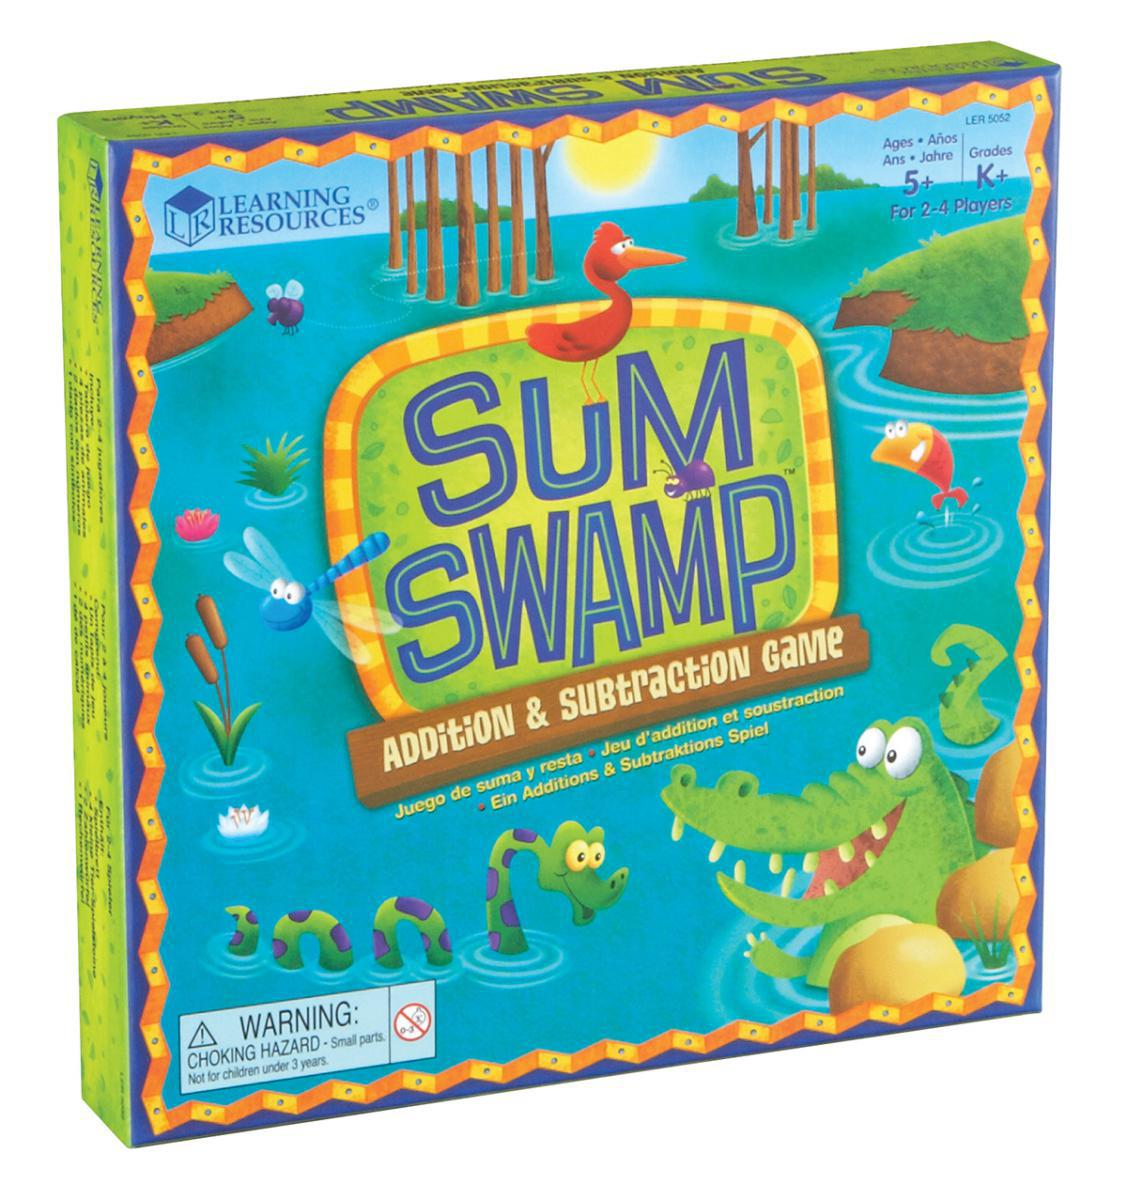 Sum Swamp: Addition & Subtraction Game